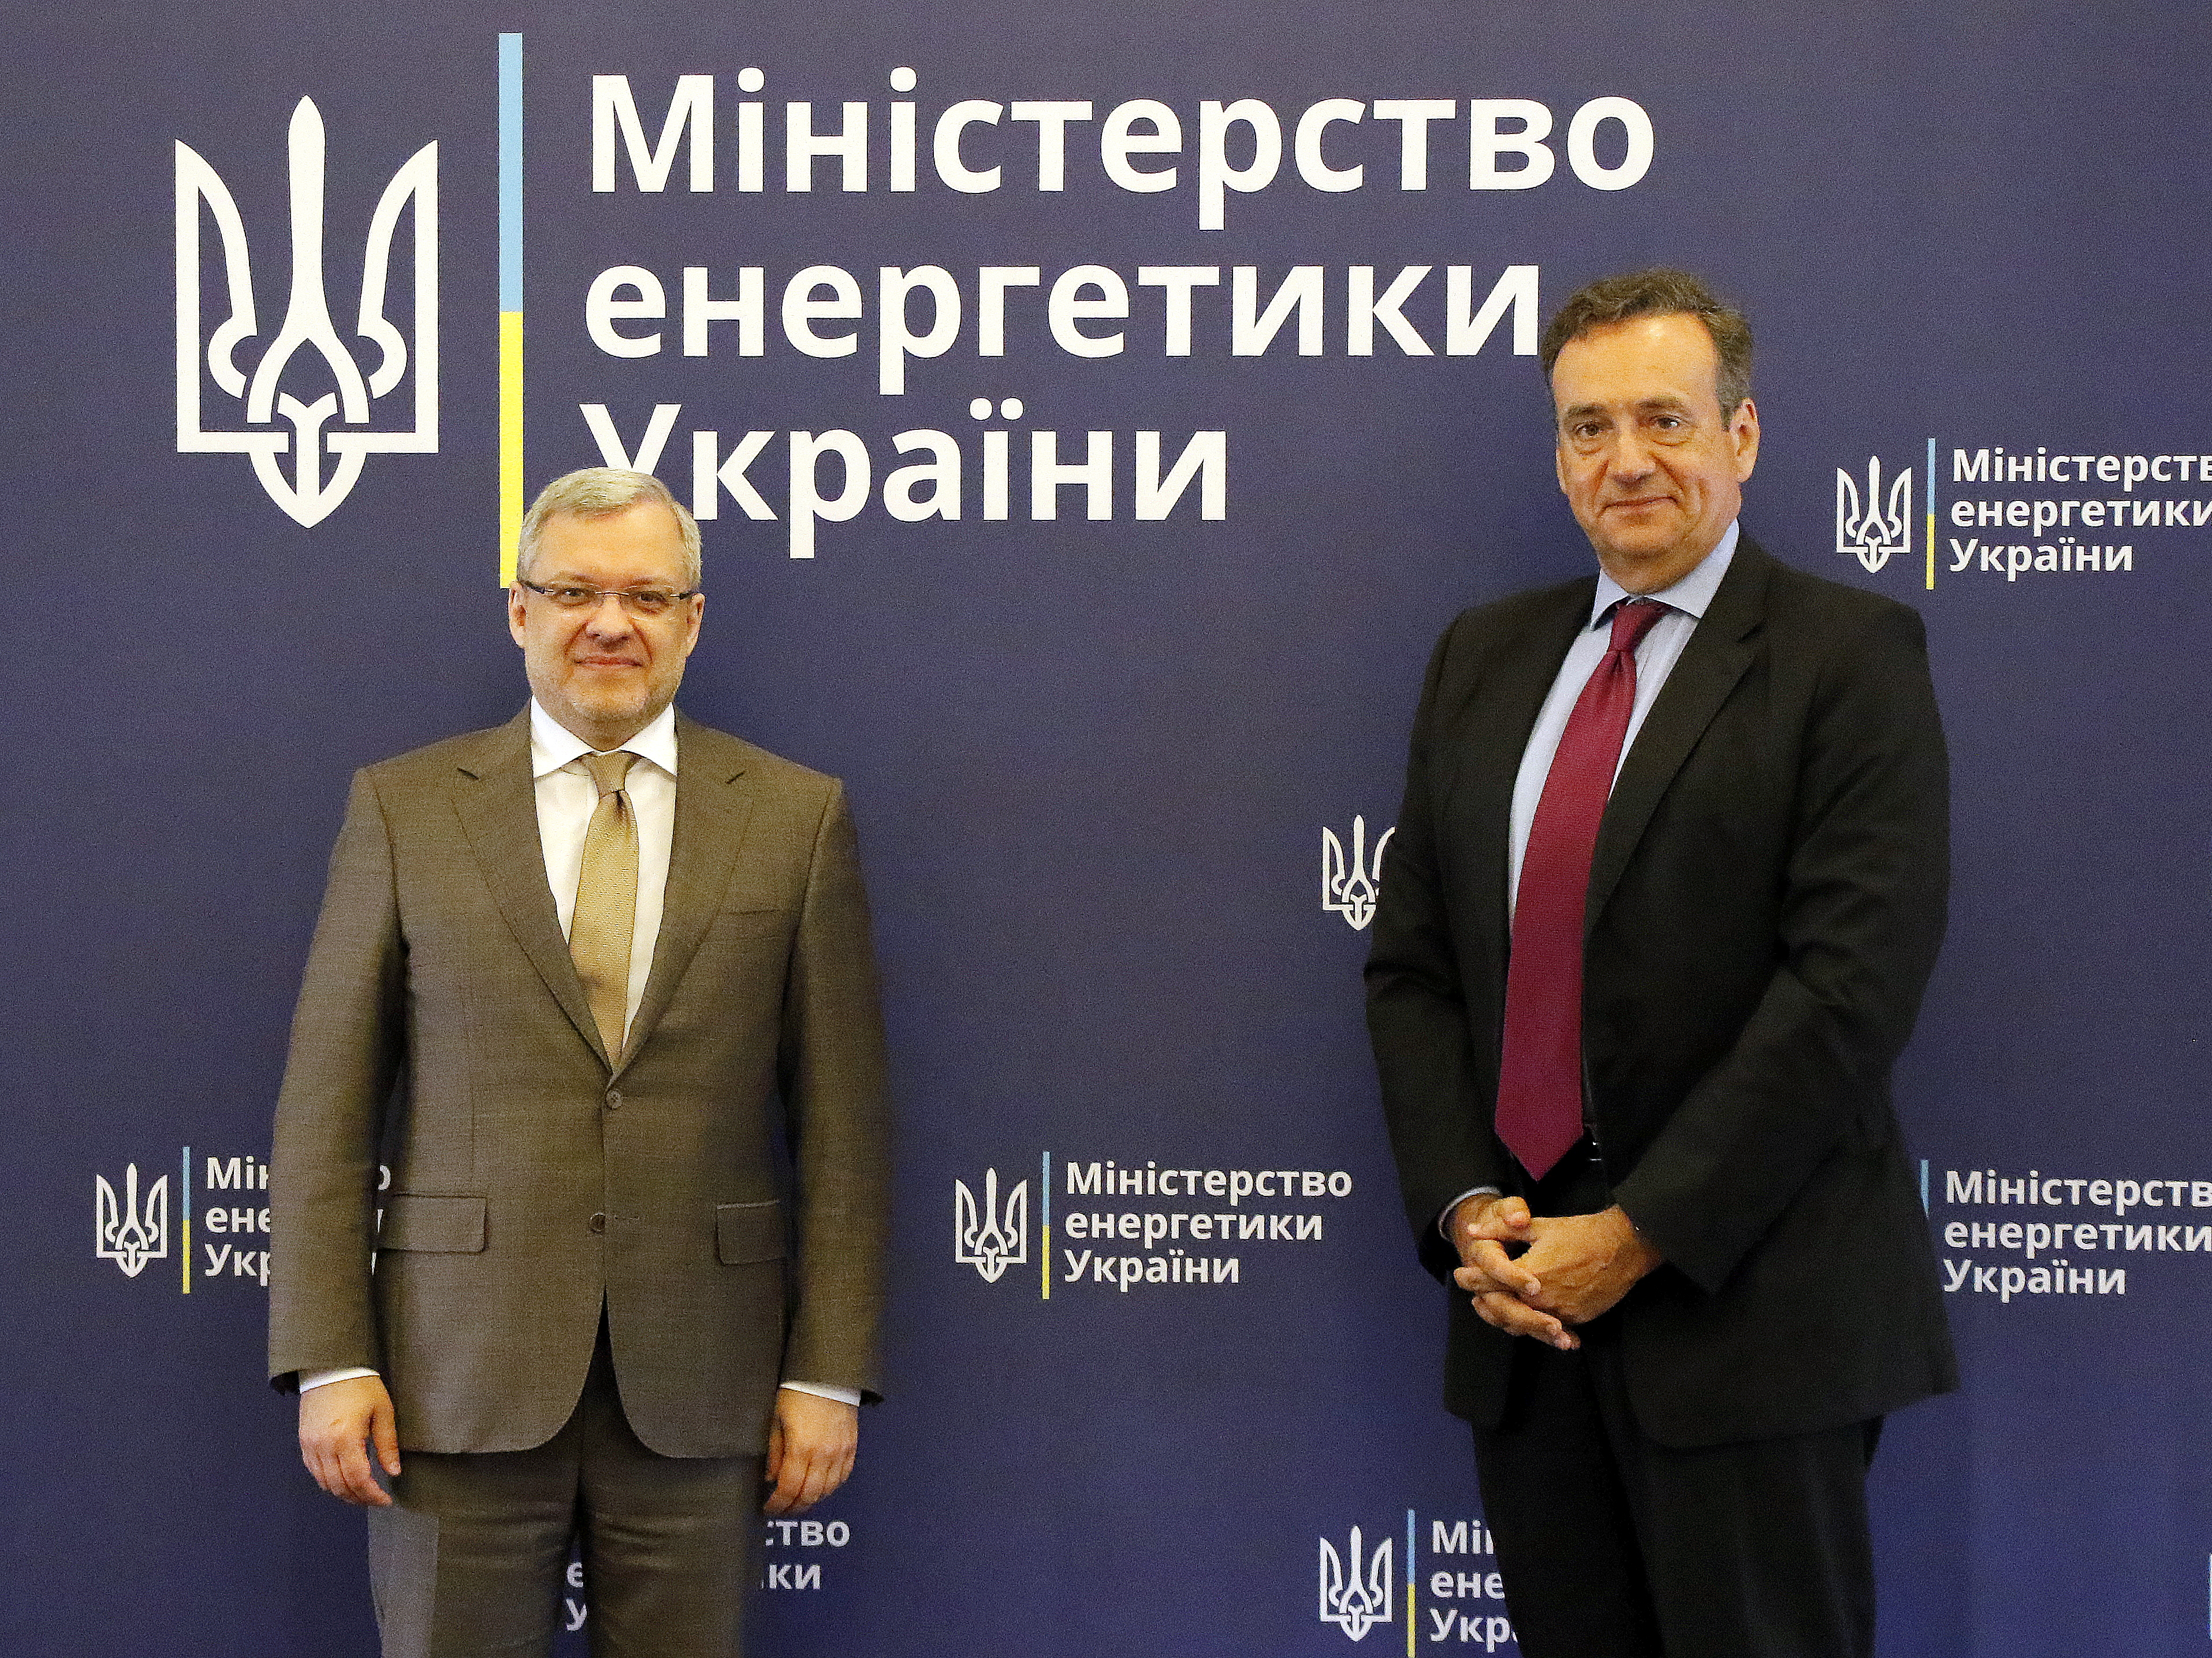 The Ministry of Energy discussed strategic cooperation with the European Investment Bank